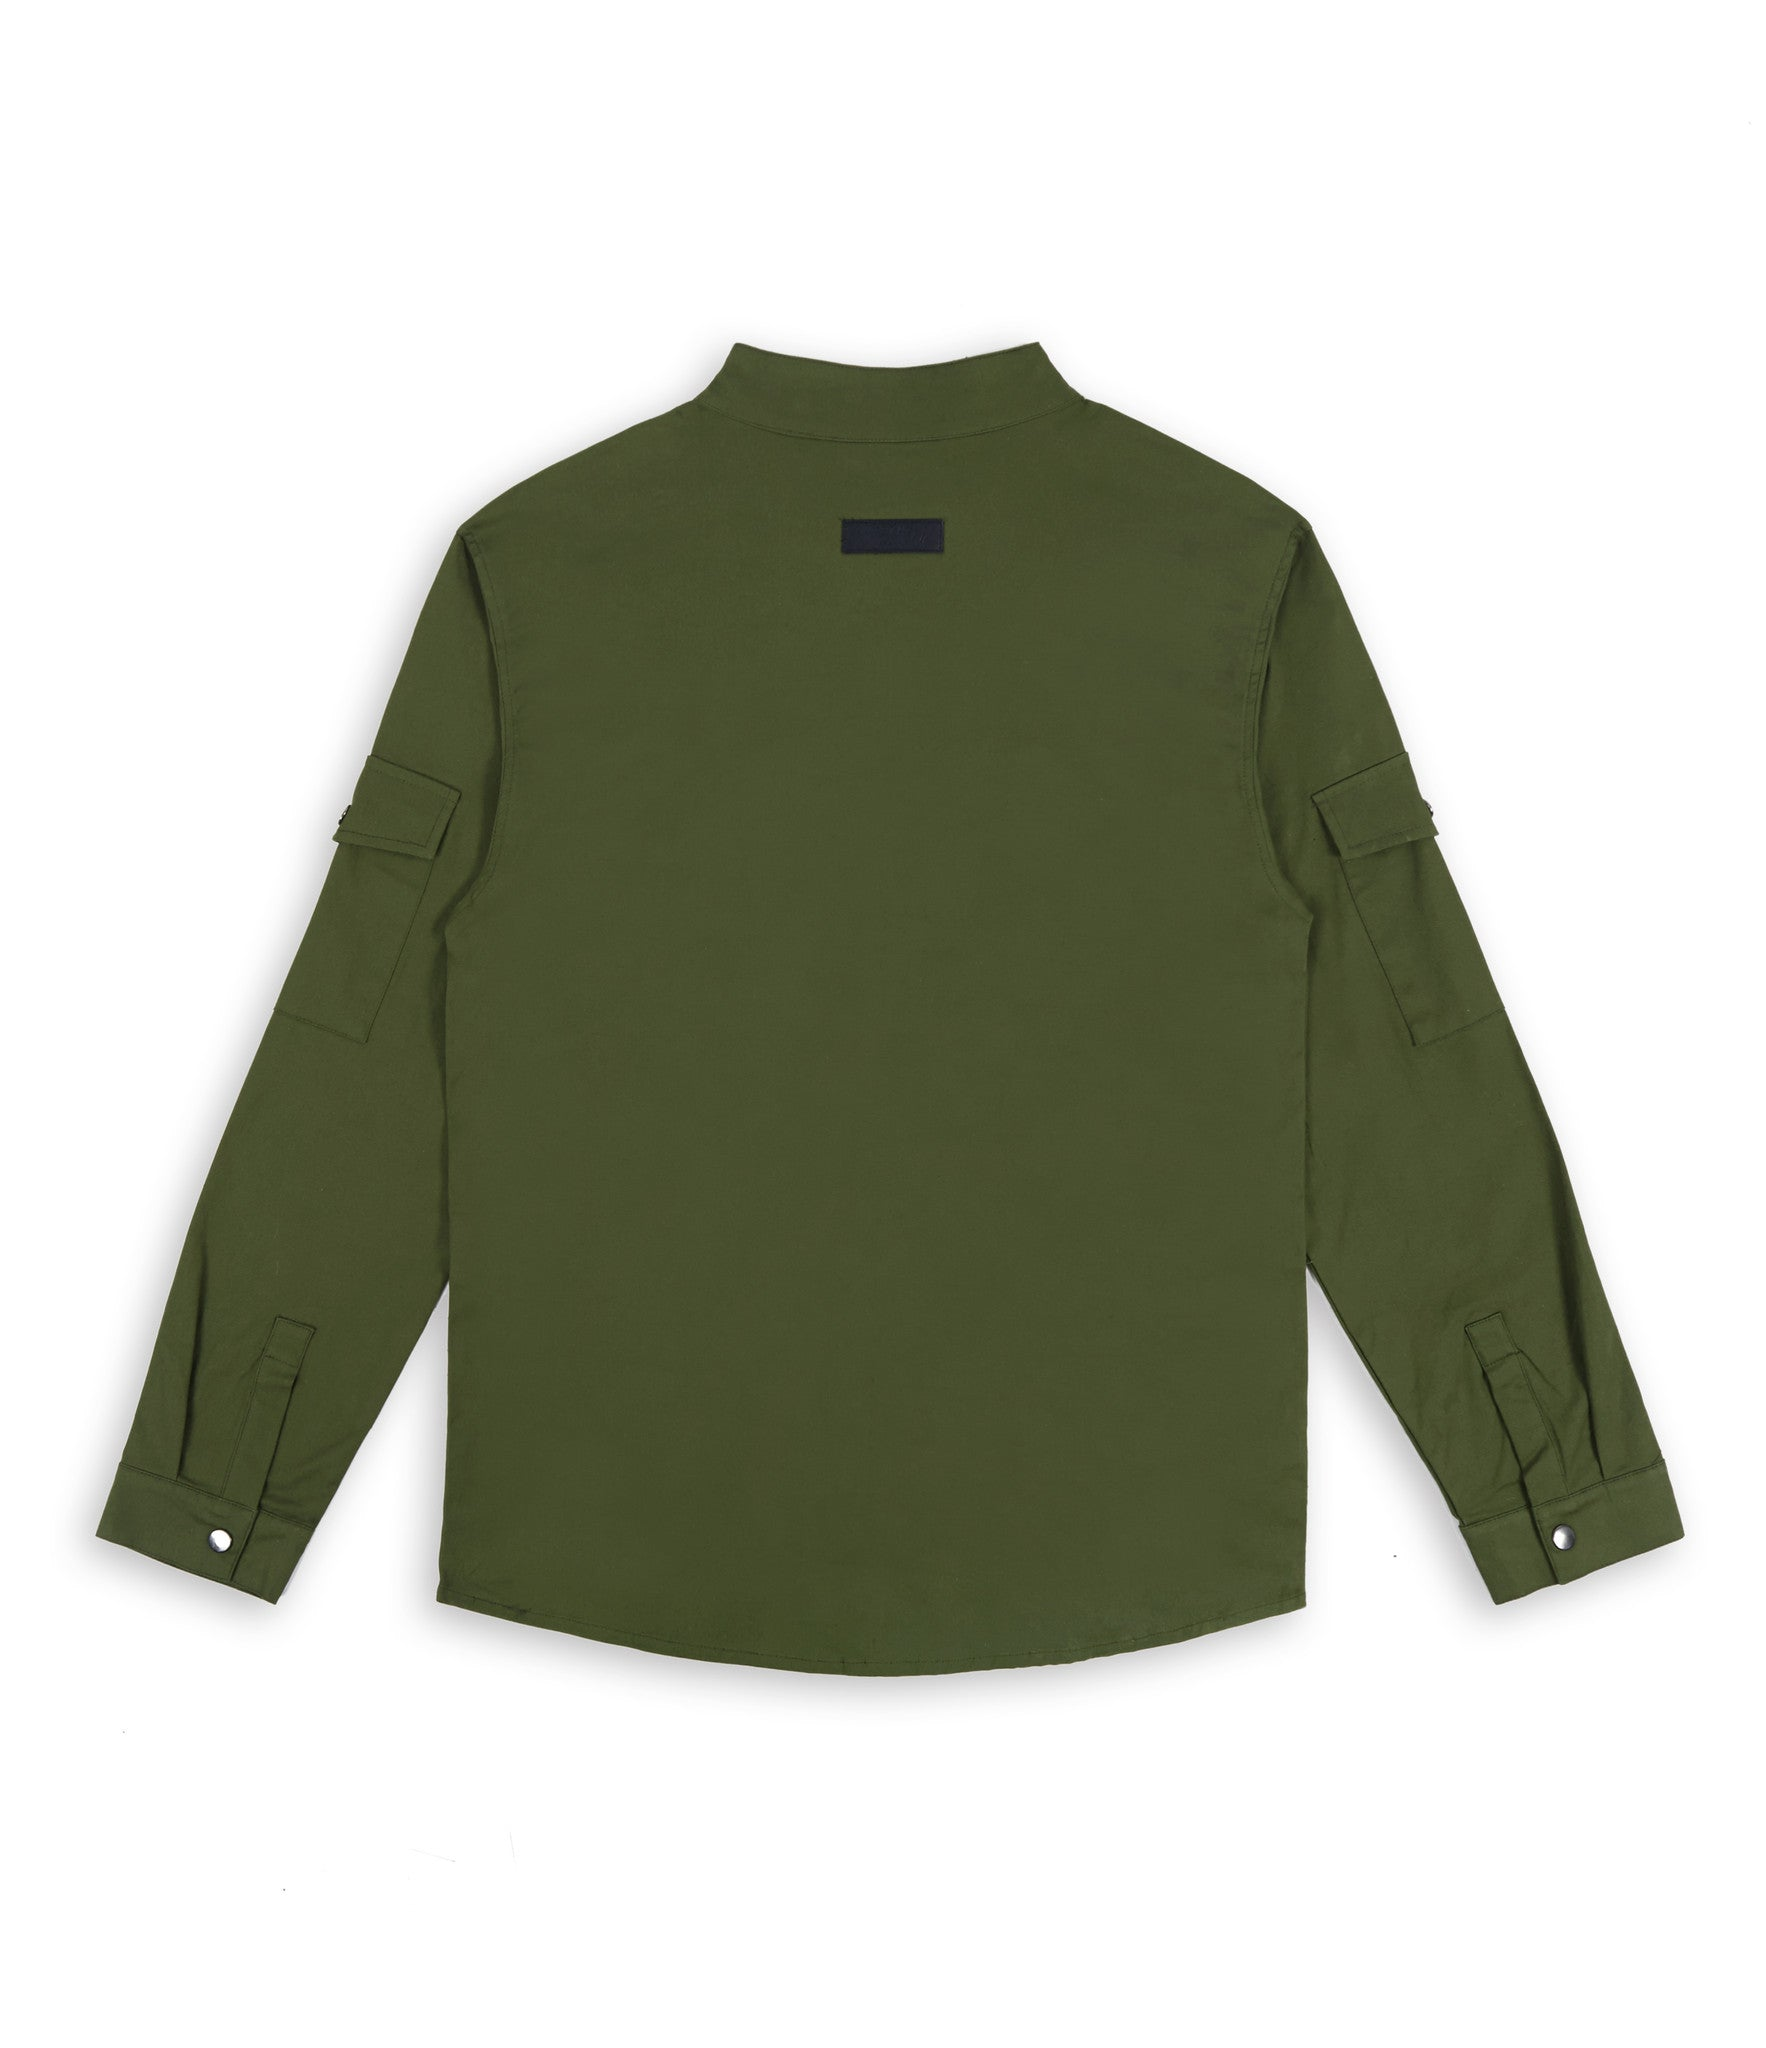 SH342 Utility Zip Shirt - Military Green - underated london - underatedco - 2